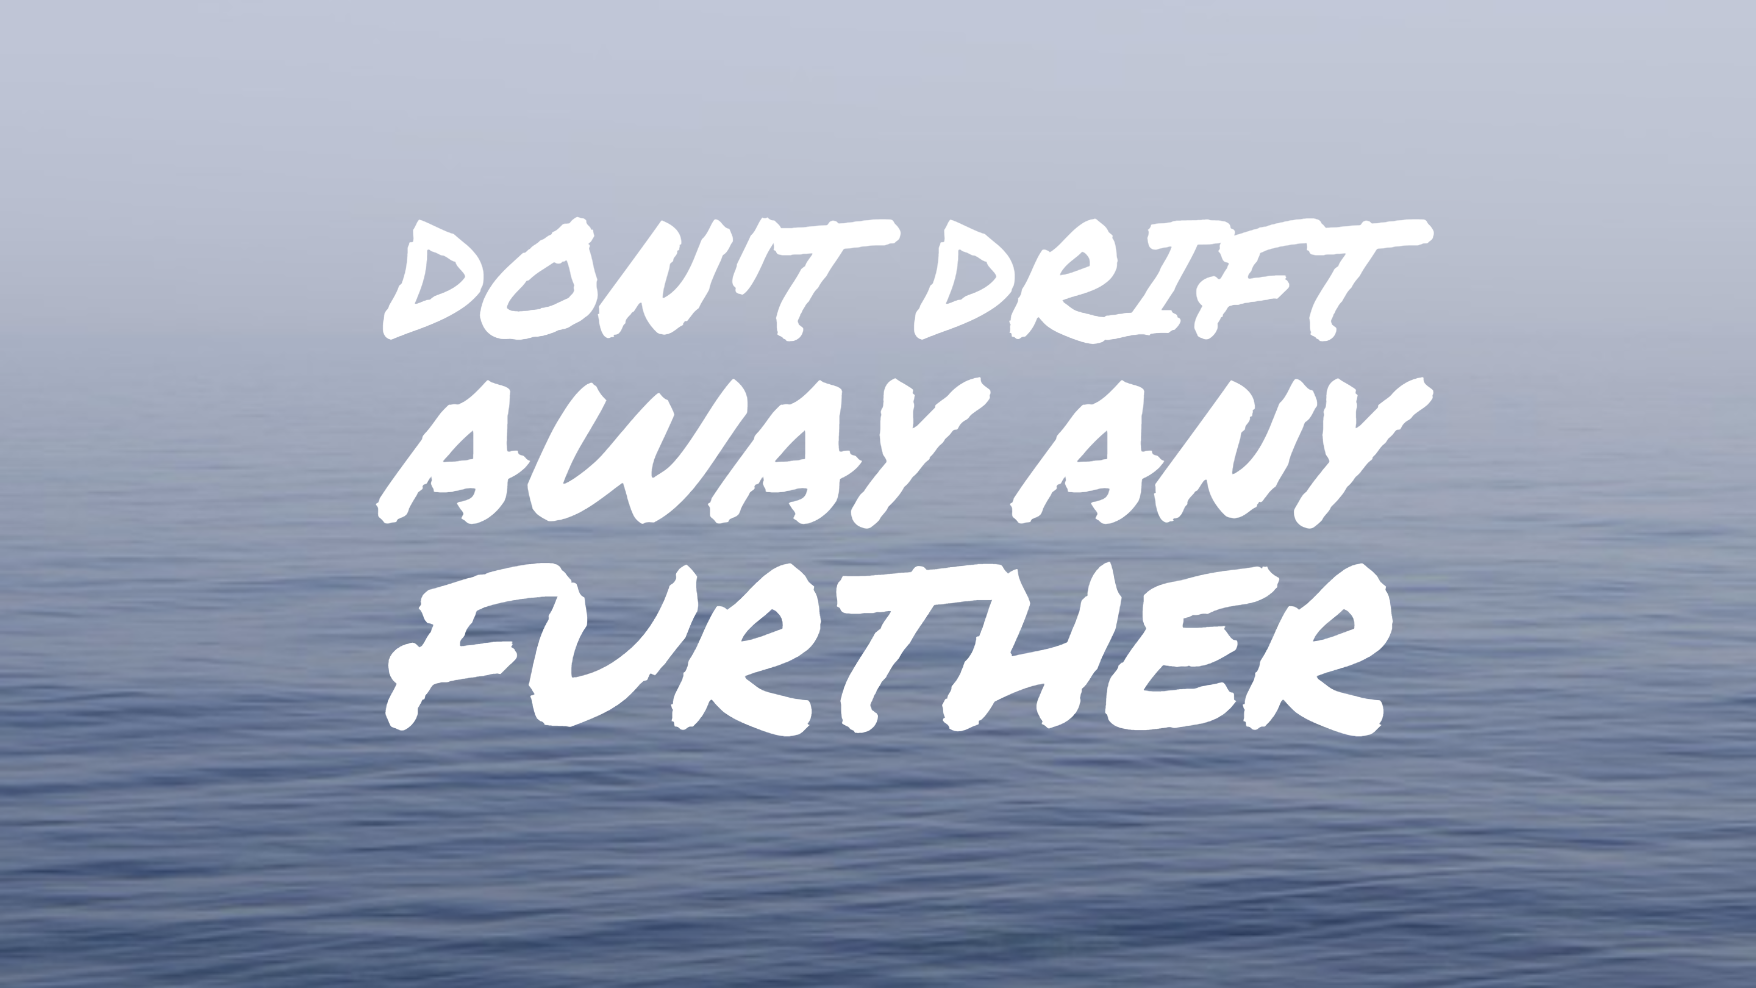 Don't drift away any further.